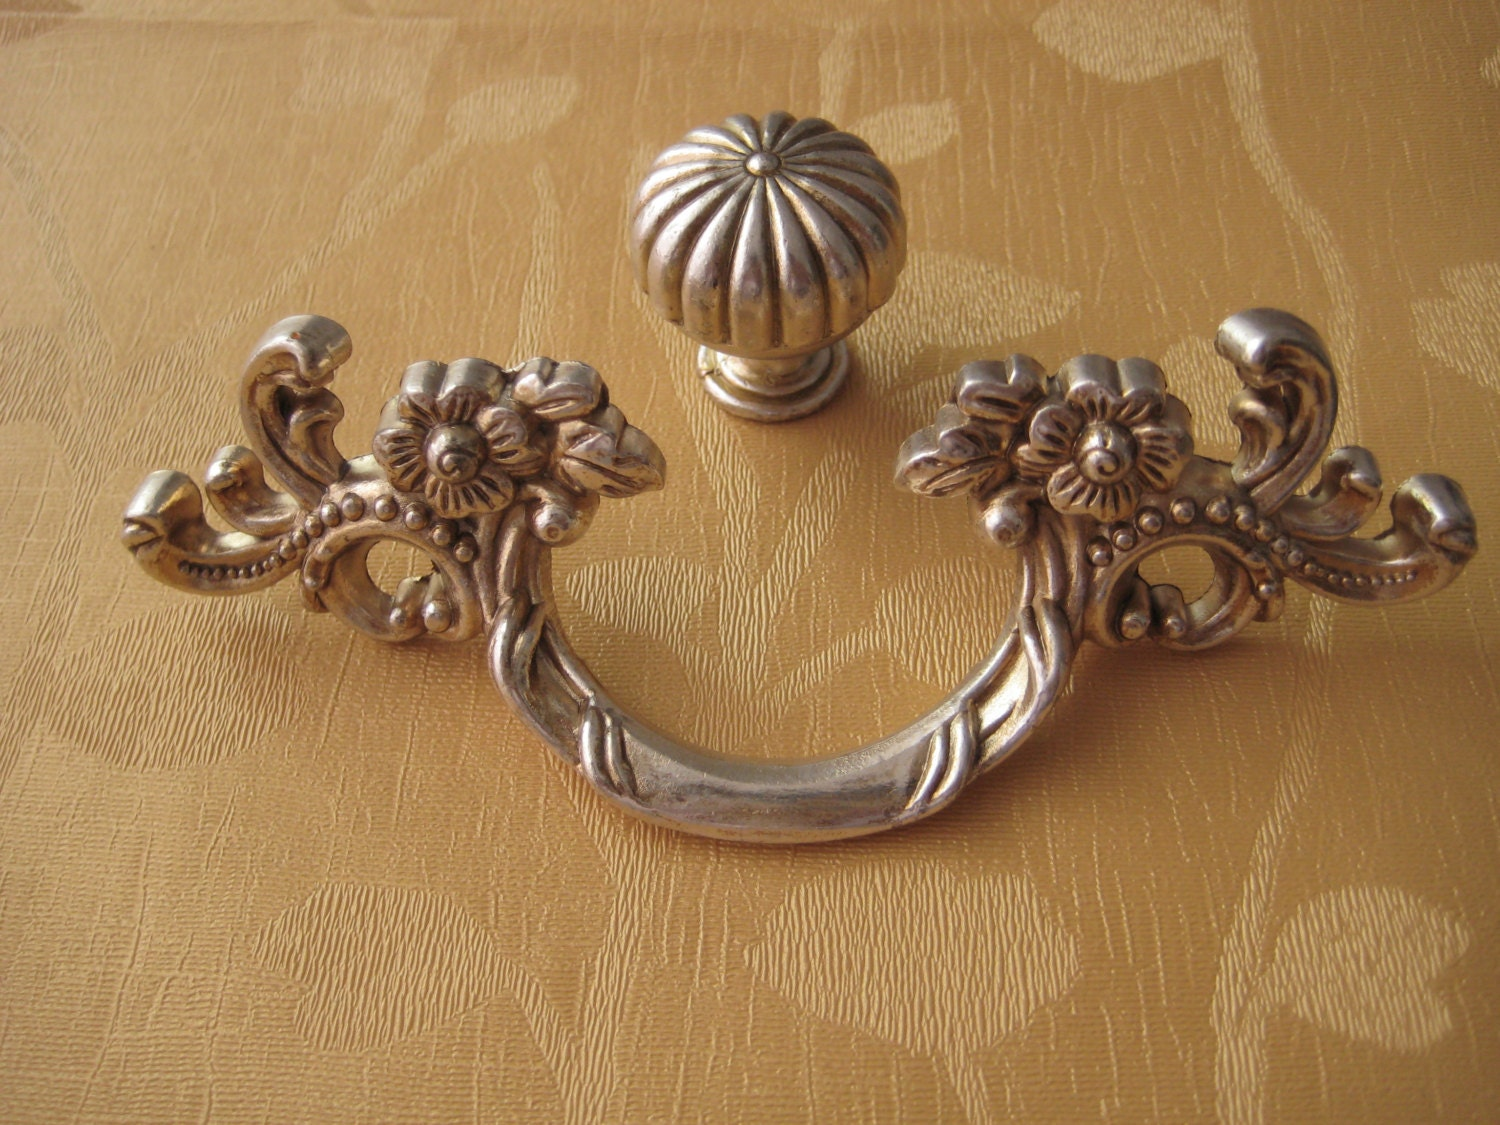 1.77'' 2.5'' Shabby Chic Dresser Pull Drawer Pulls Door Handles Antique Silver French Vintage